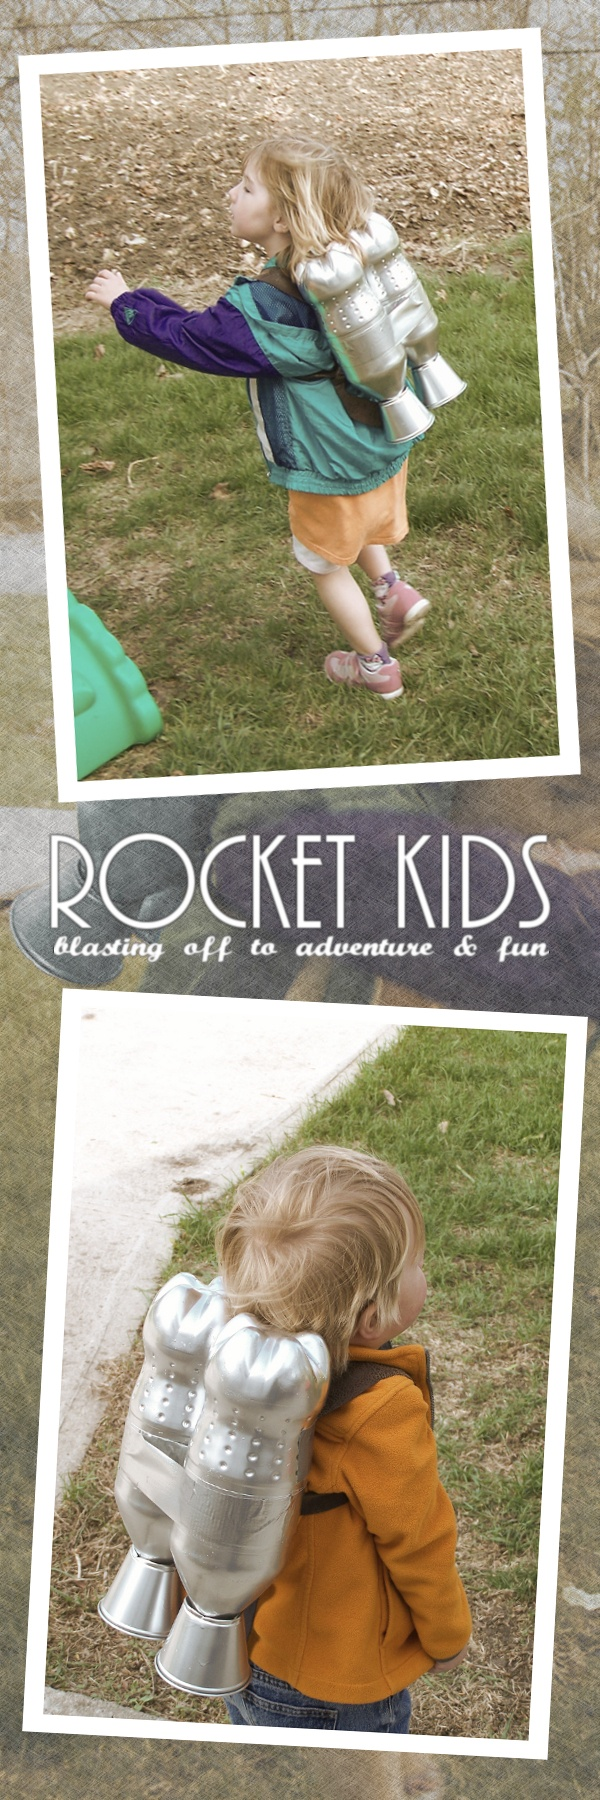 Rocket Kids: blasting off to adventure & fun (or perhaps, Junior Rocketeers). Saw DIY Rocket Packs on Pinterest and decided to make my own. Used pop bottles (sprite specifically for the spots), plastic cups, duct tape, plastic primer, silver paint, and some pleather fabric for the straps.